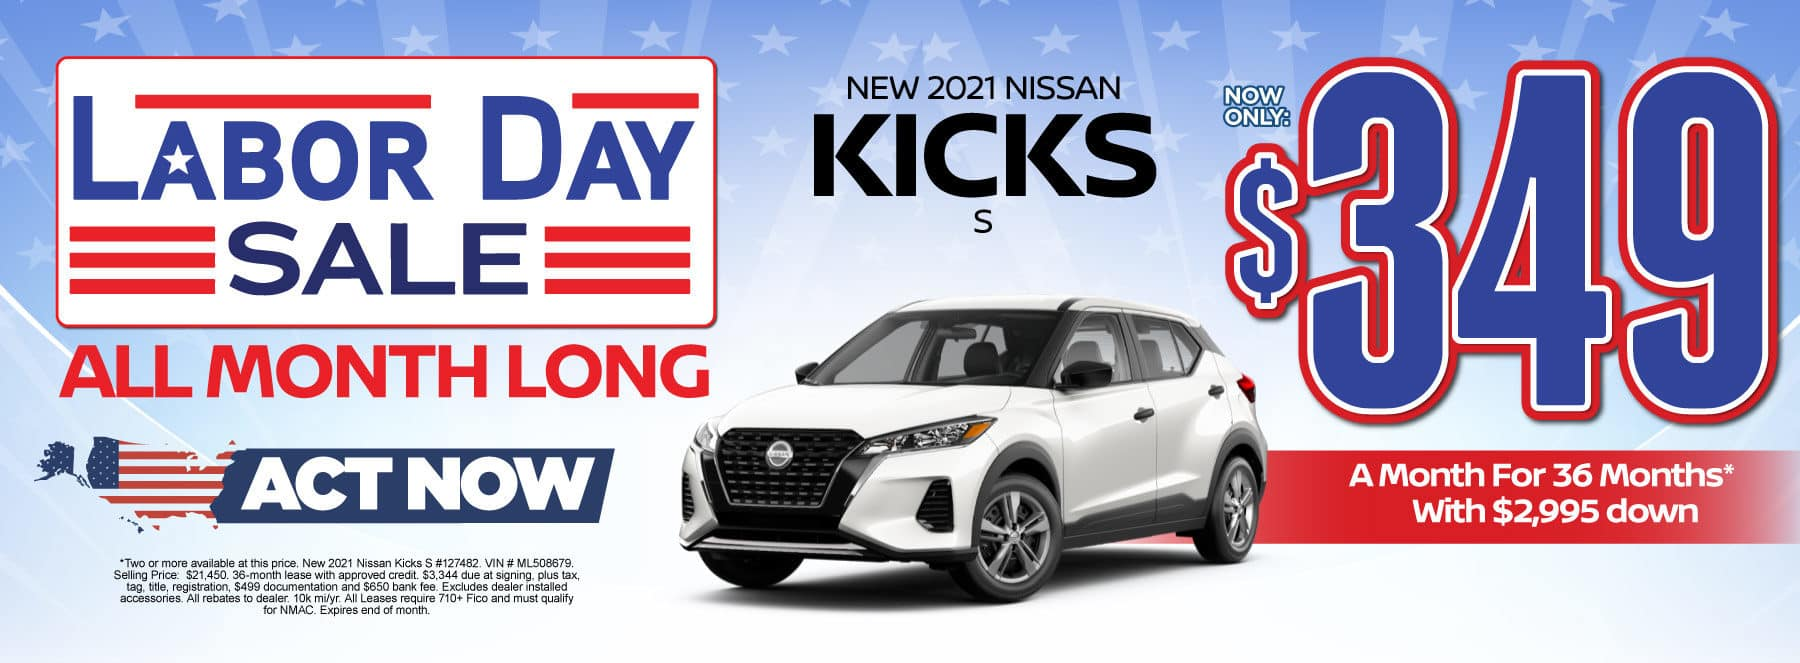 New 2021 Nissan Kicks - Now only $349 a month - Act Now